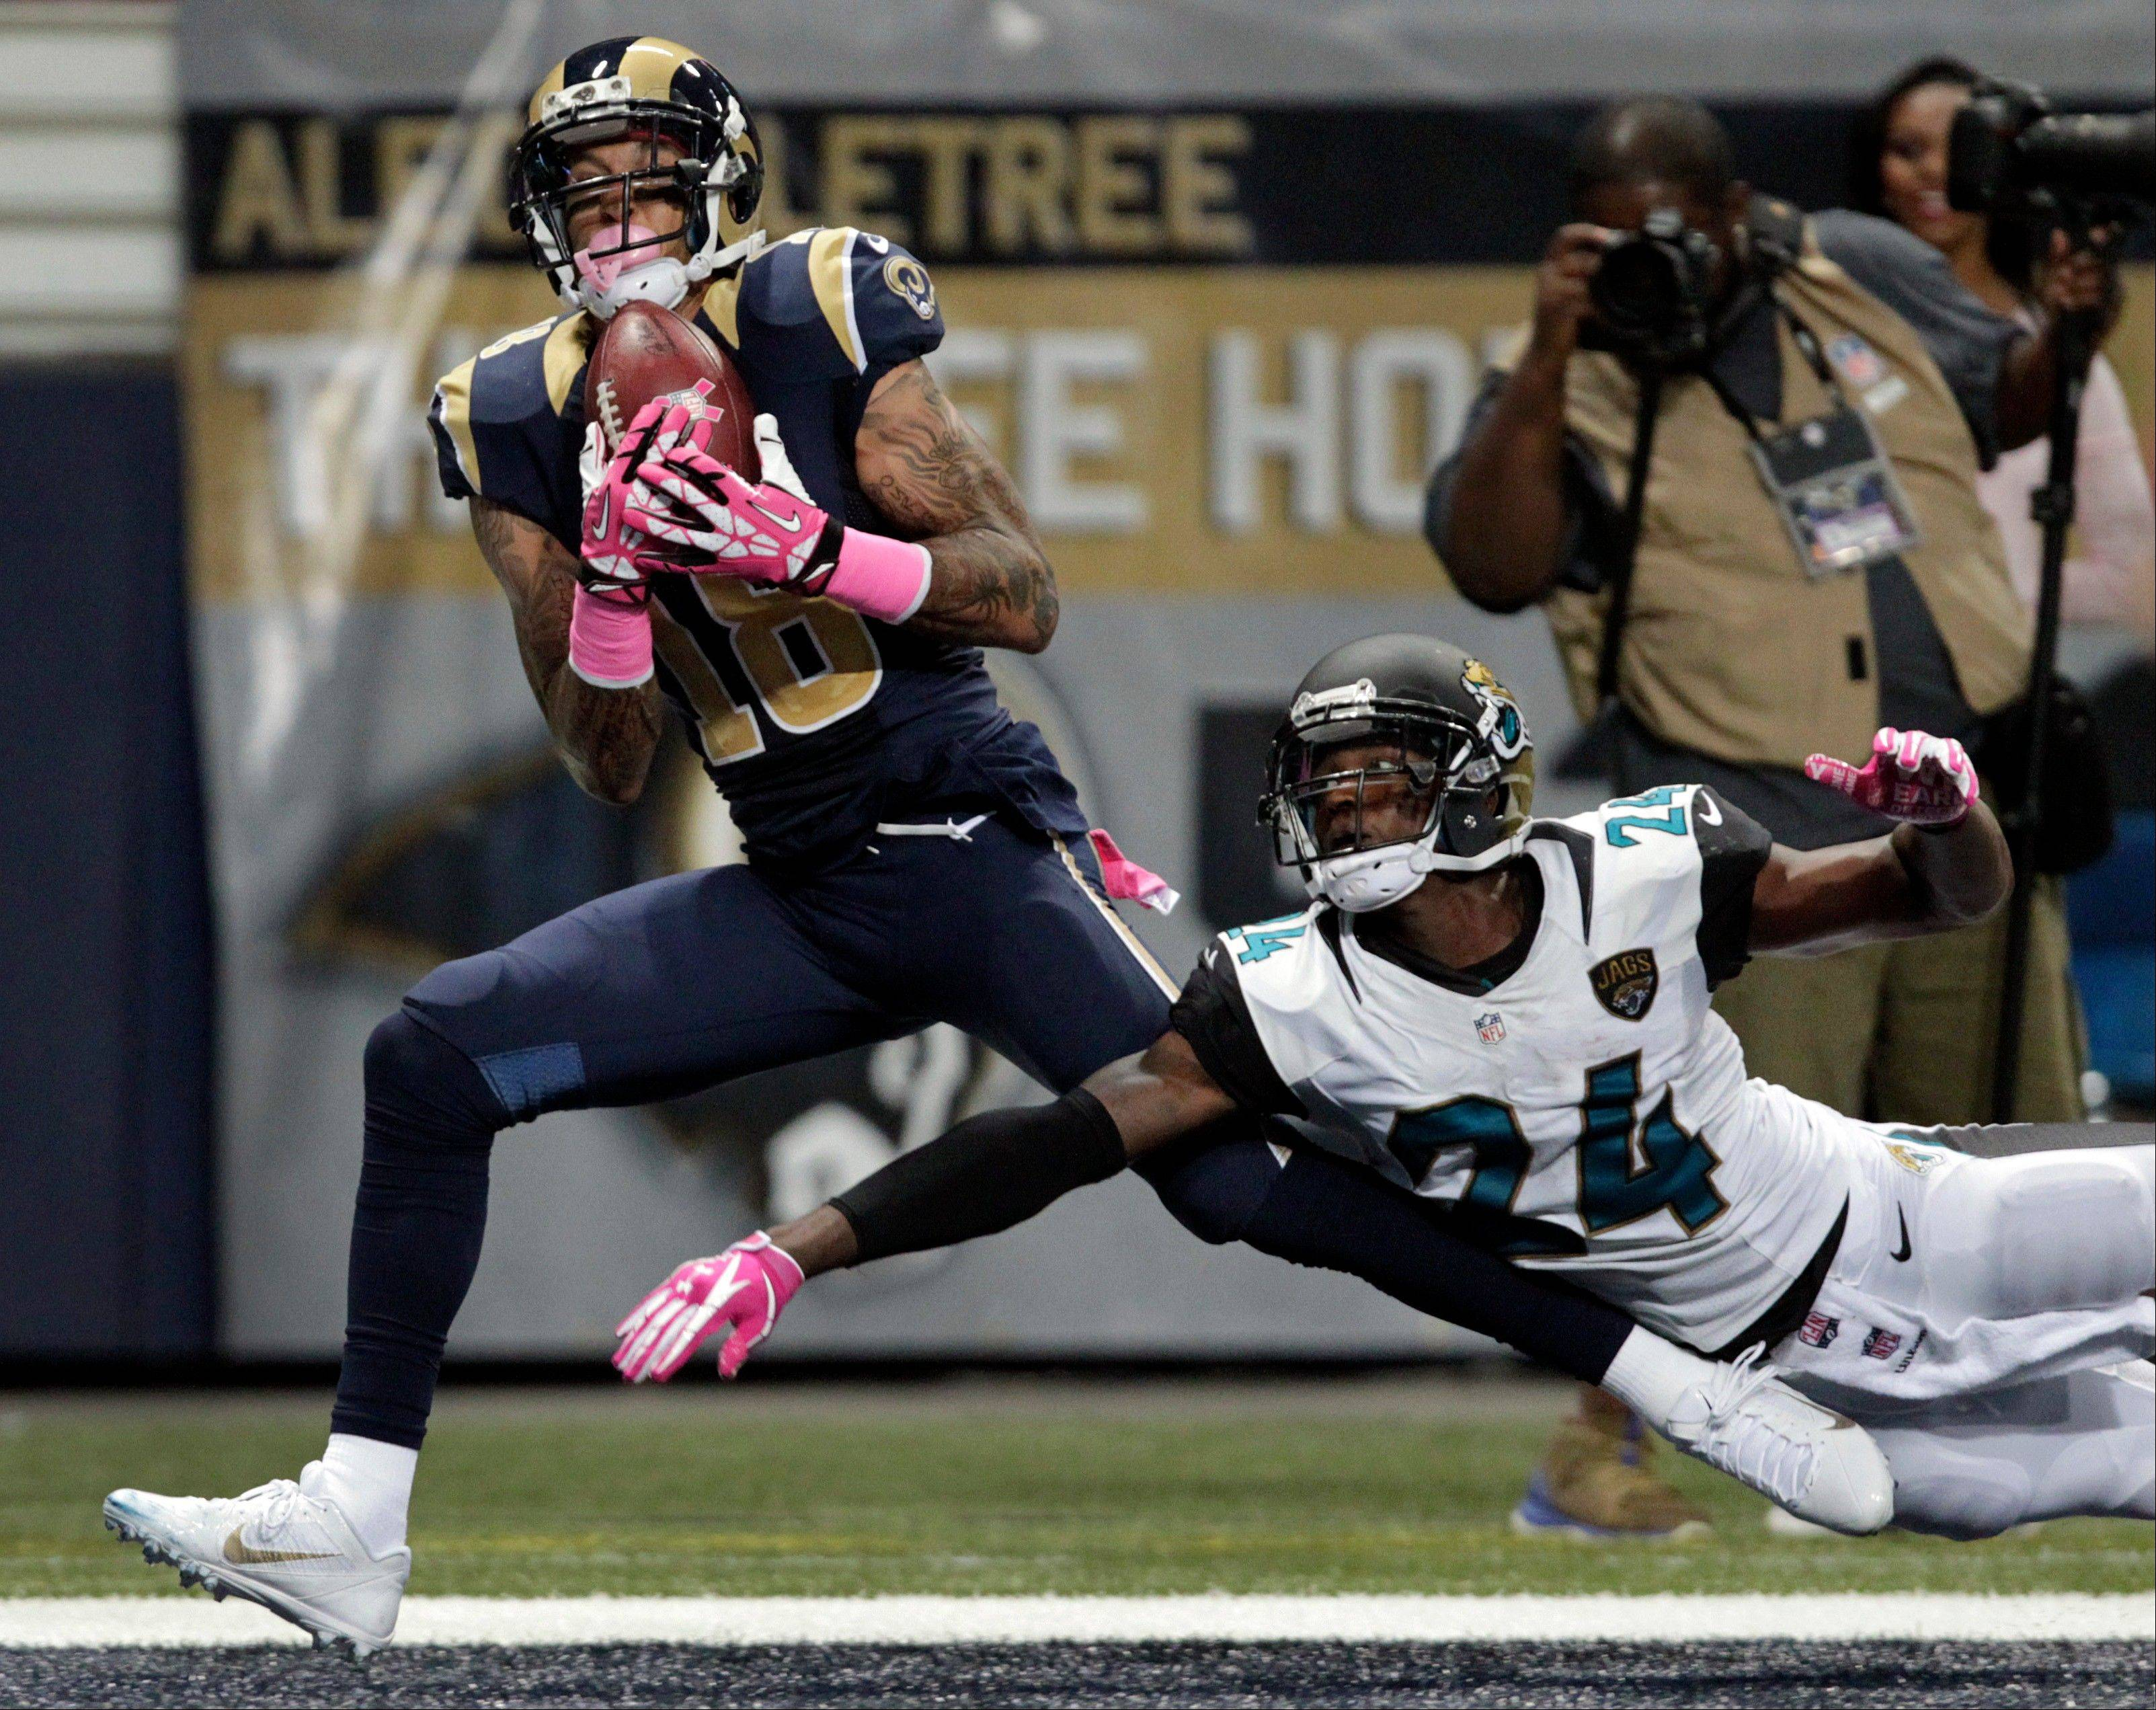 St. Louis Rams wide receiver Austin Pettis, left, catches a 31-yard pass for a touchdown as Jacksonville Jaguars defensive back Will Blackmon defends during the fourth quarter of an NFL football game Sunday, Oct. 6, 2013, in St. Louis.